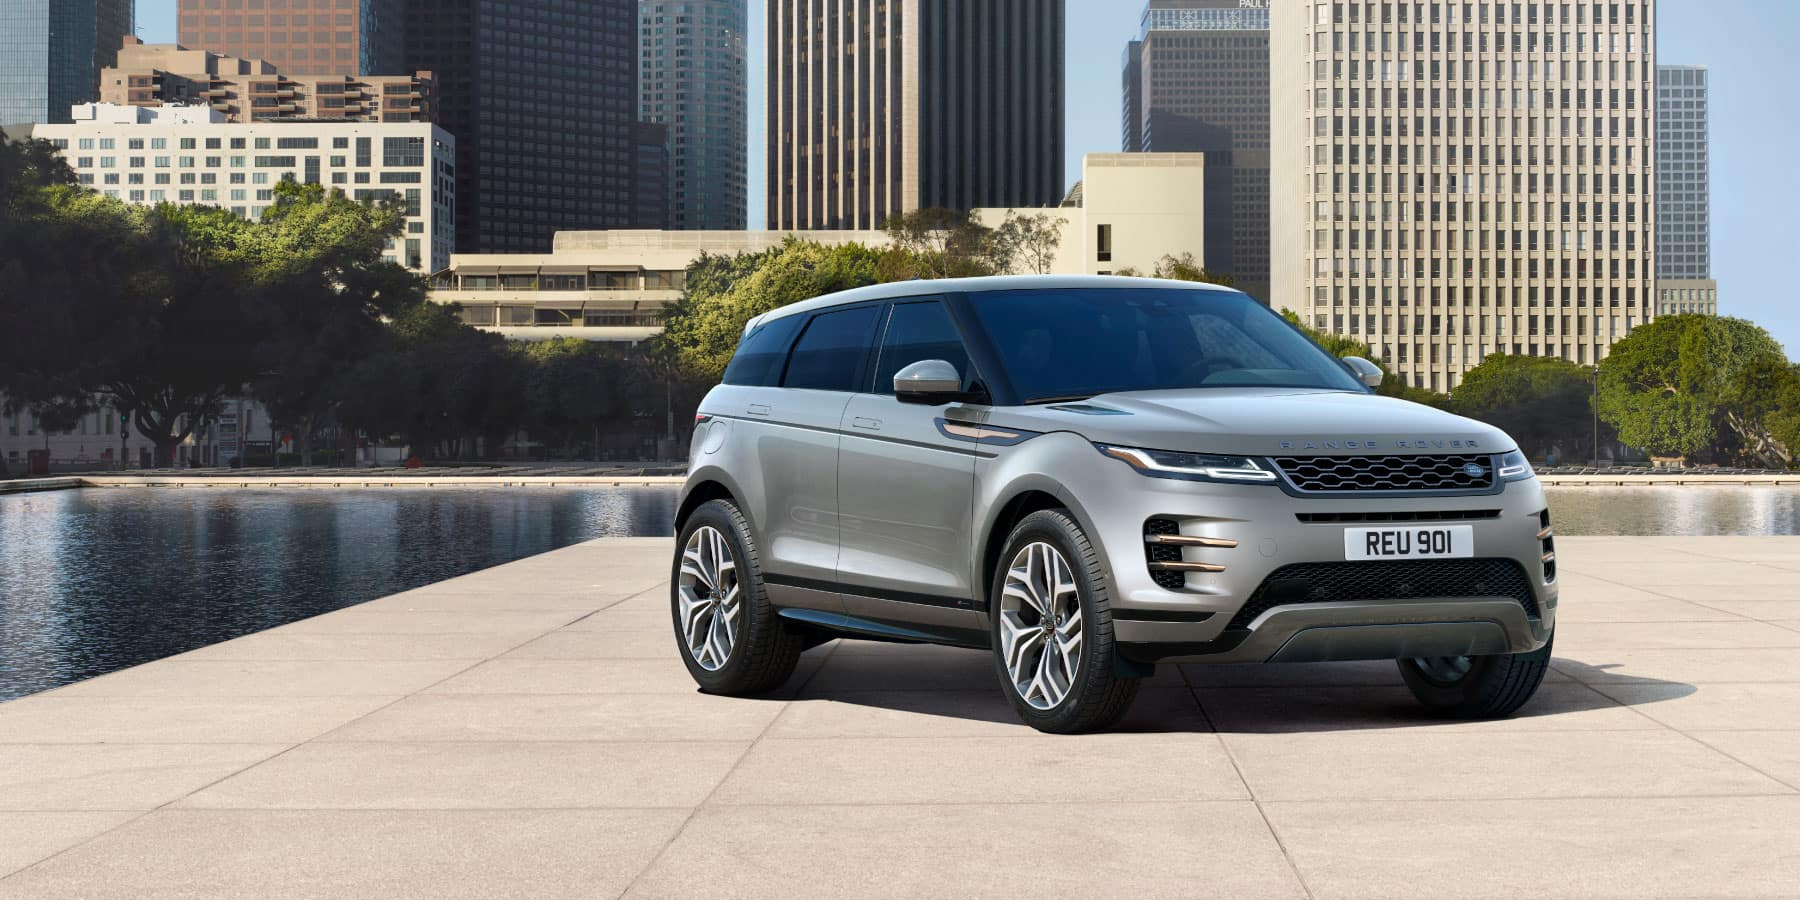 Land Rover Fort Worth | Top New Car Release Date